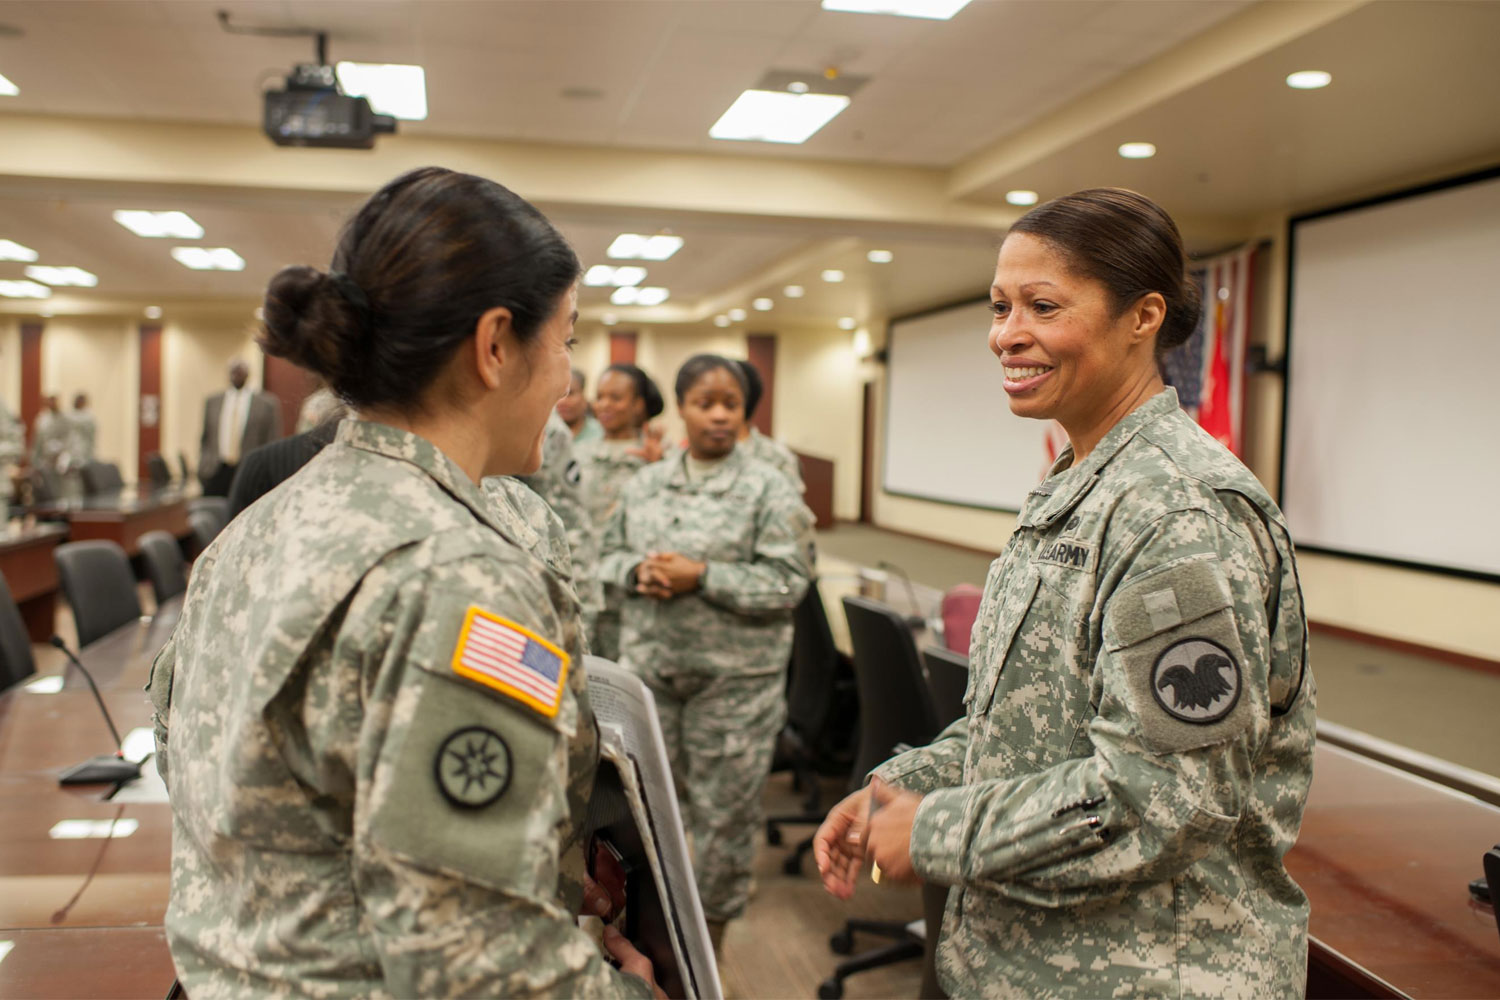 female army general retires with an eye to helping others